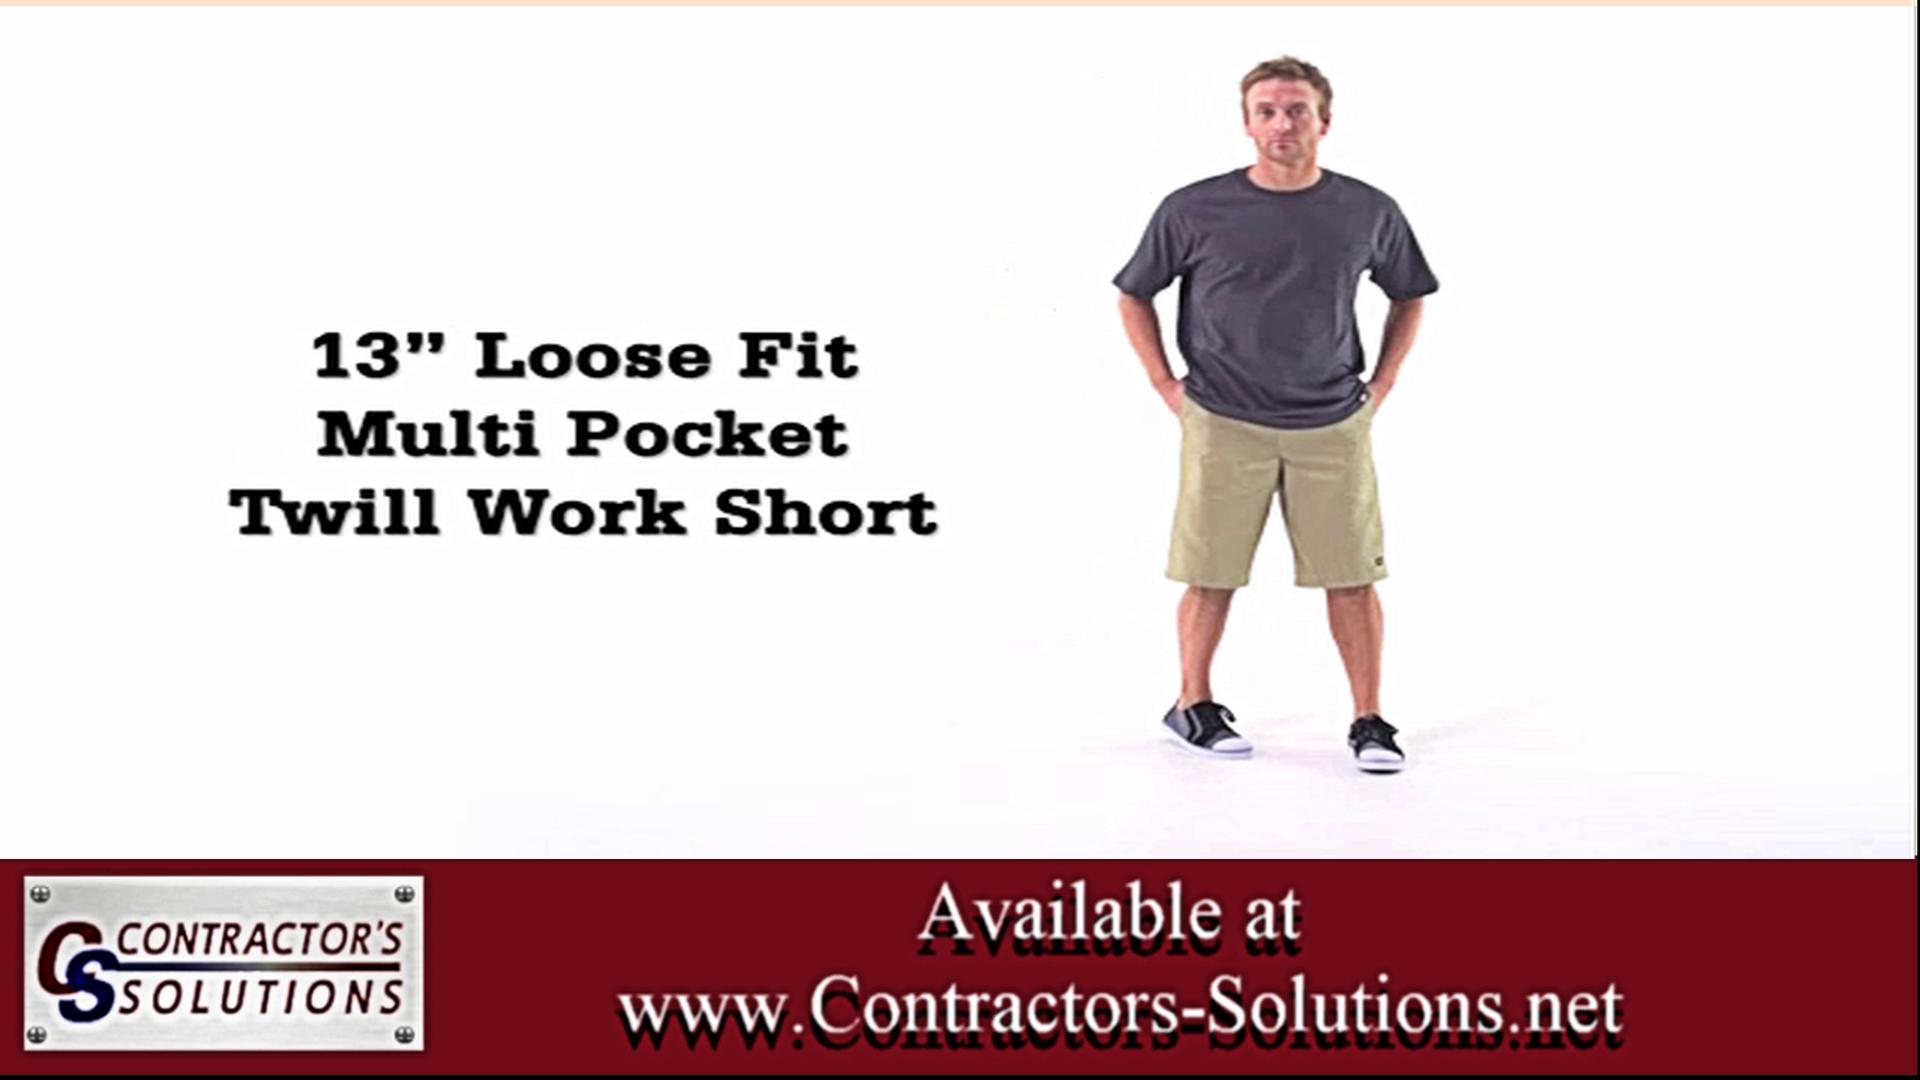 Loose Fit Multi Pocket Twill Work Shorts